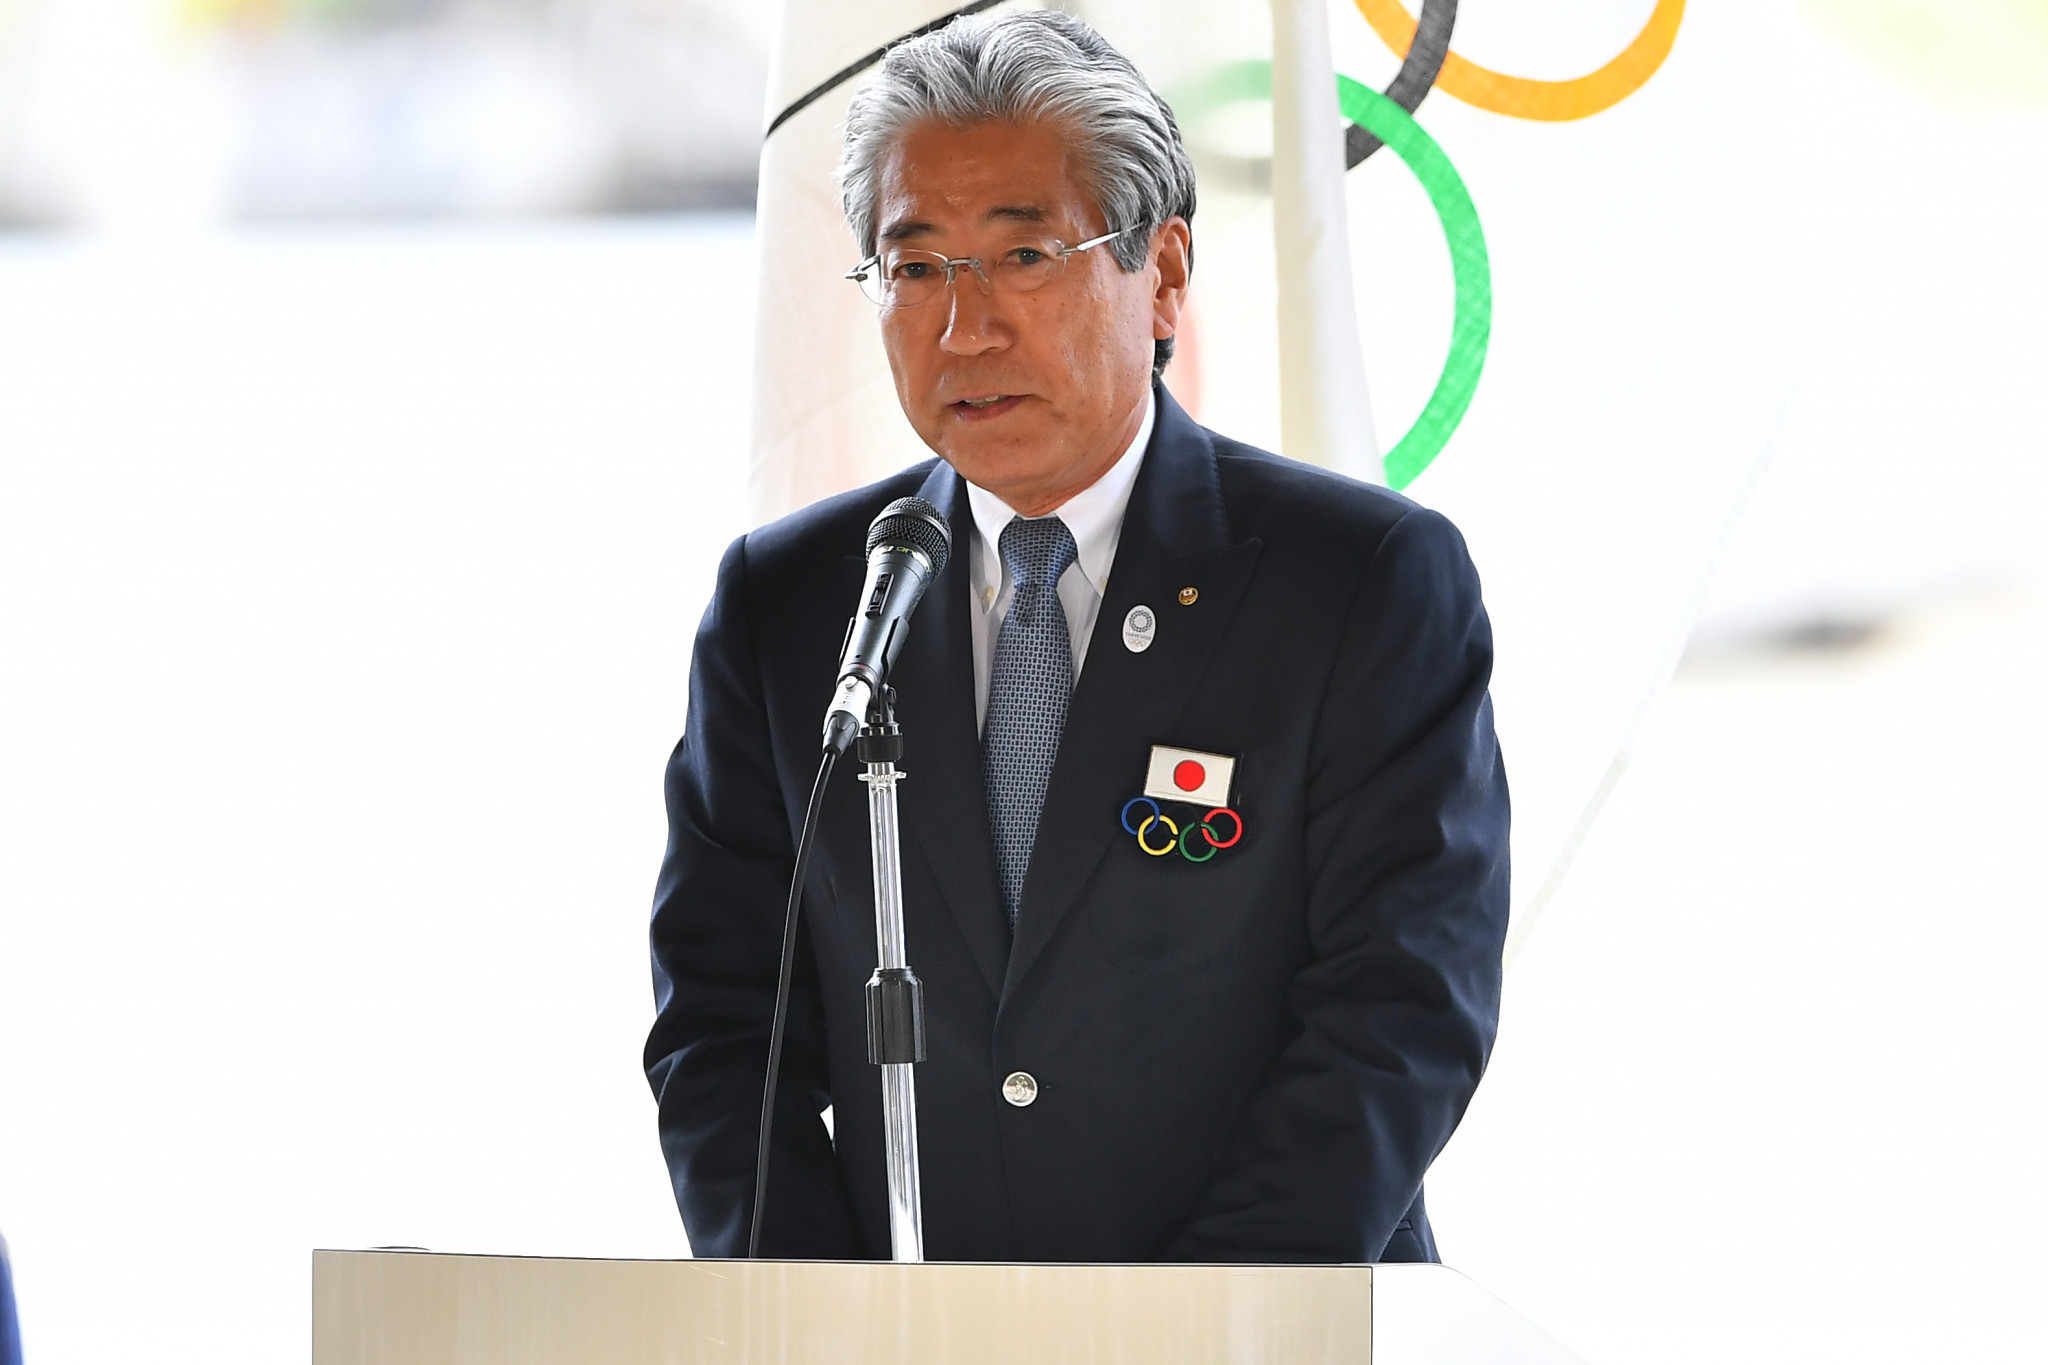 Japanese Olympic Committee back Pyeongchang 2018 despite map mix-up